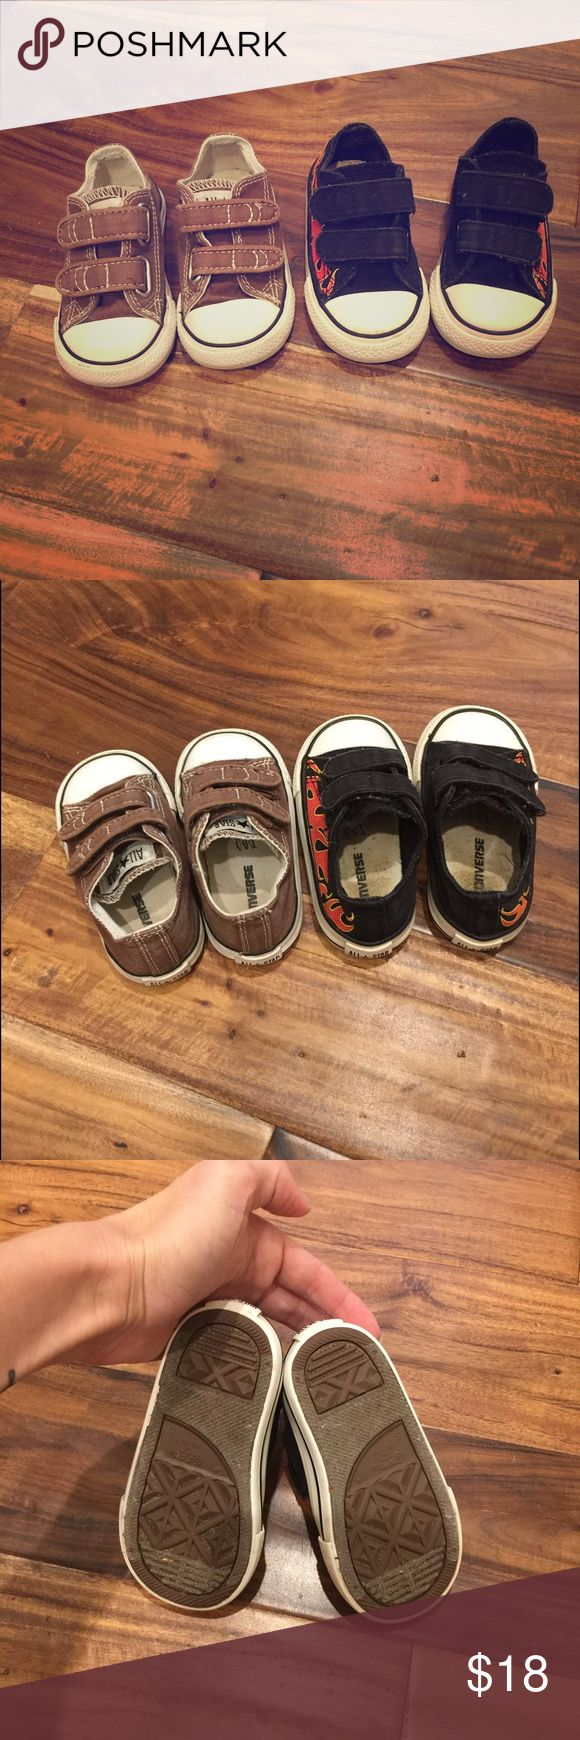 Boys Converse black with flames and brown toddler boys black converse with flames and brown converse. EUC, we love these, easy to put on and off your little one, velcro straps instead of laces Converse Shoes Sneakers